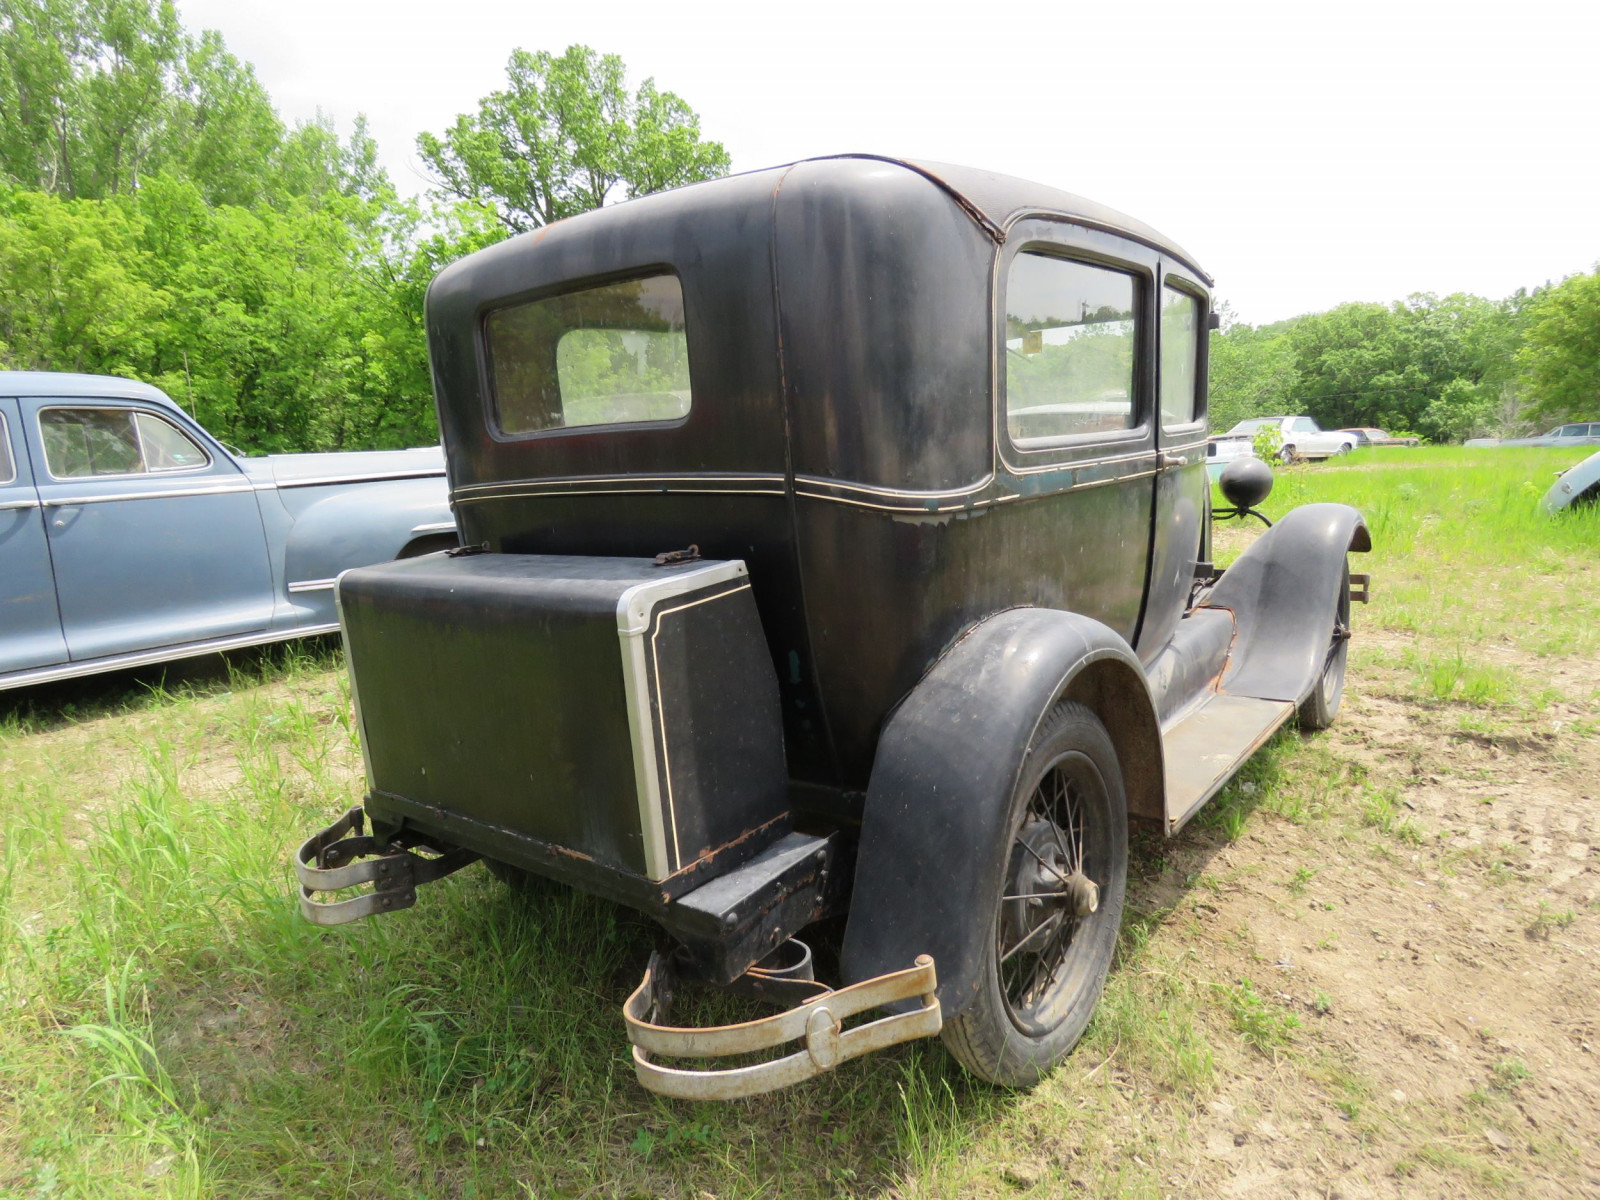 1929 Ford Model A 4dr Sedan - Image 5